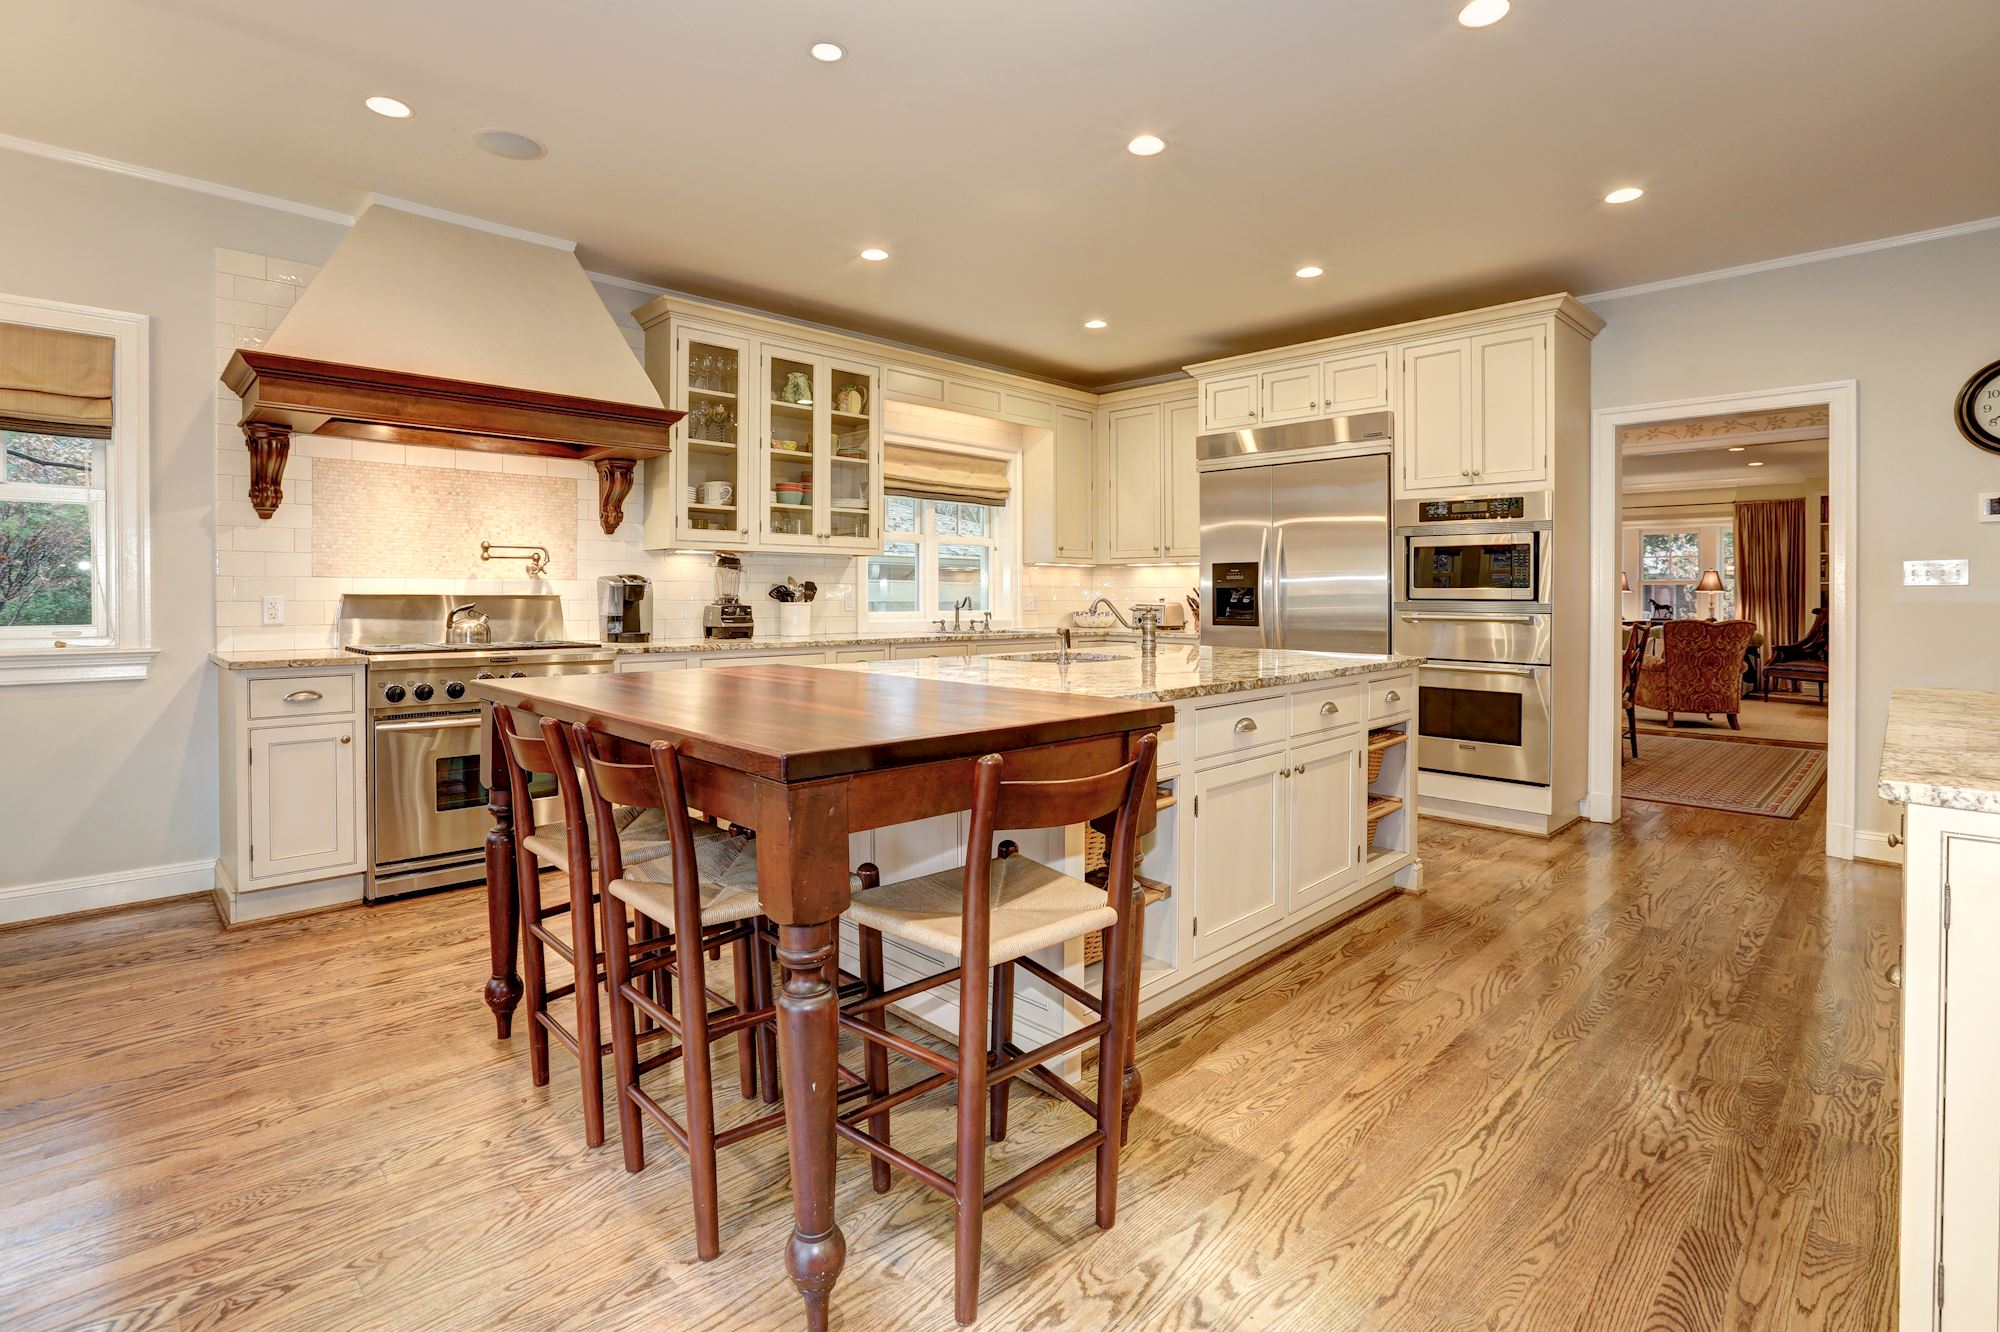 View more kitchens 187 - View More